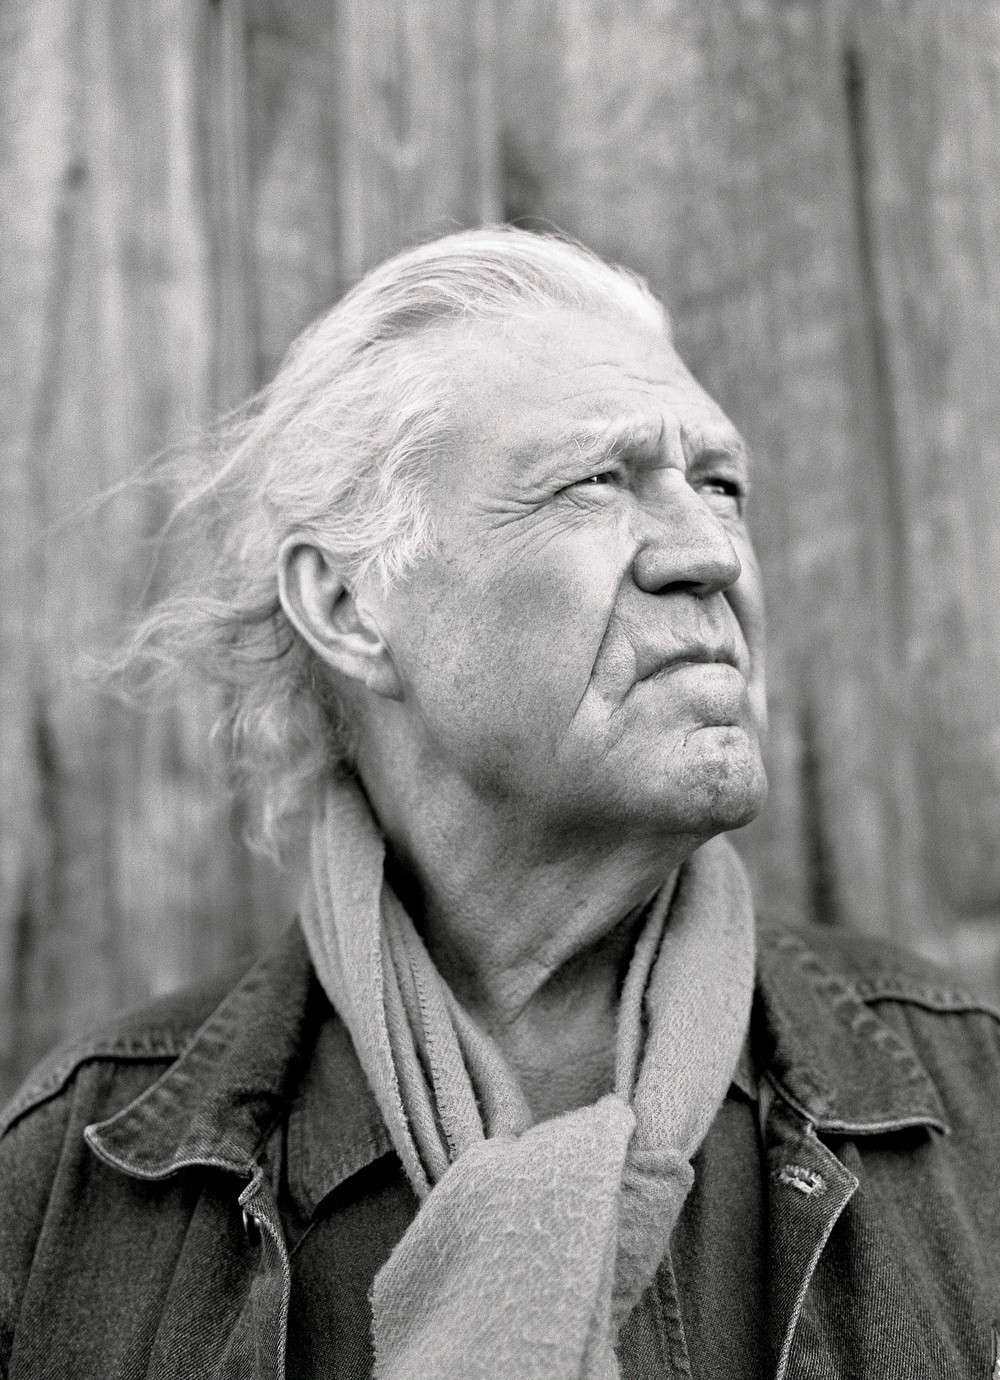 billy joe shaver - photo #14